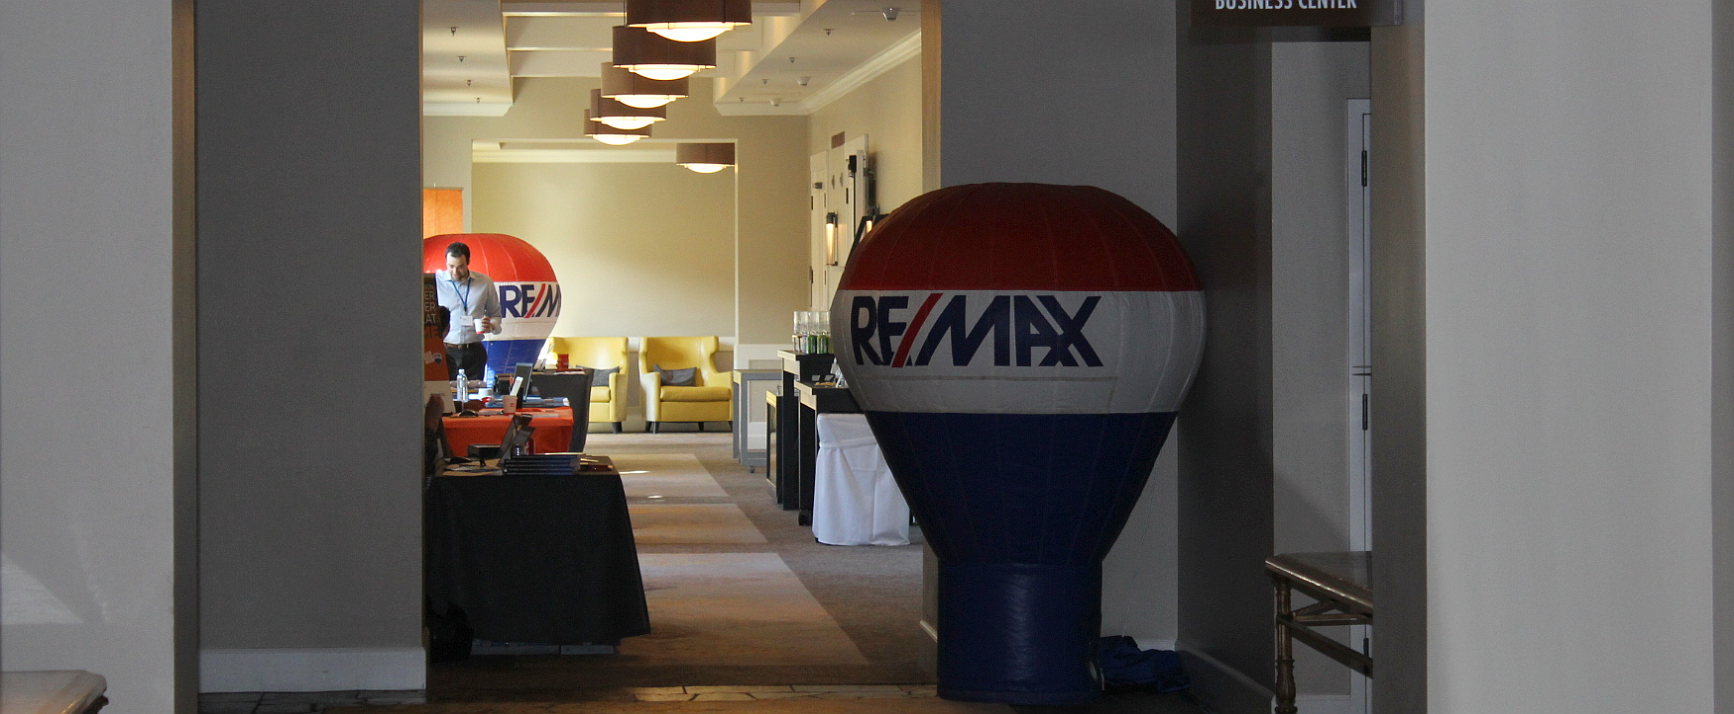 RE/MAX 6 Foot Cold Air Inflatables